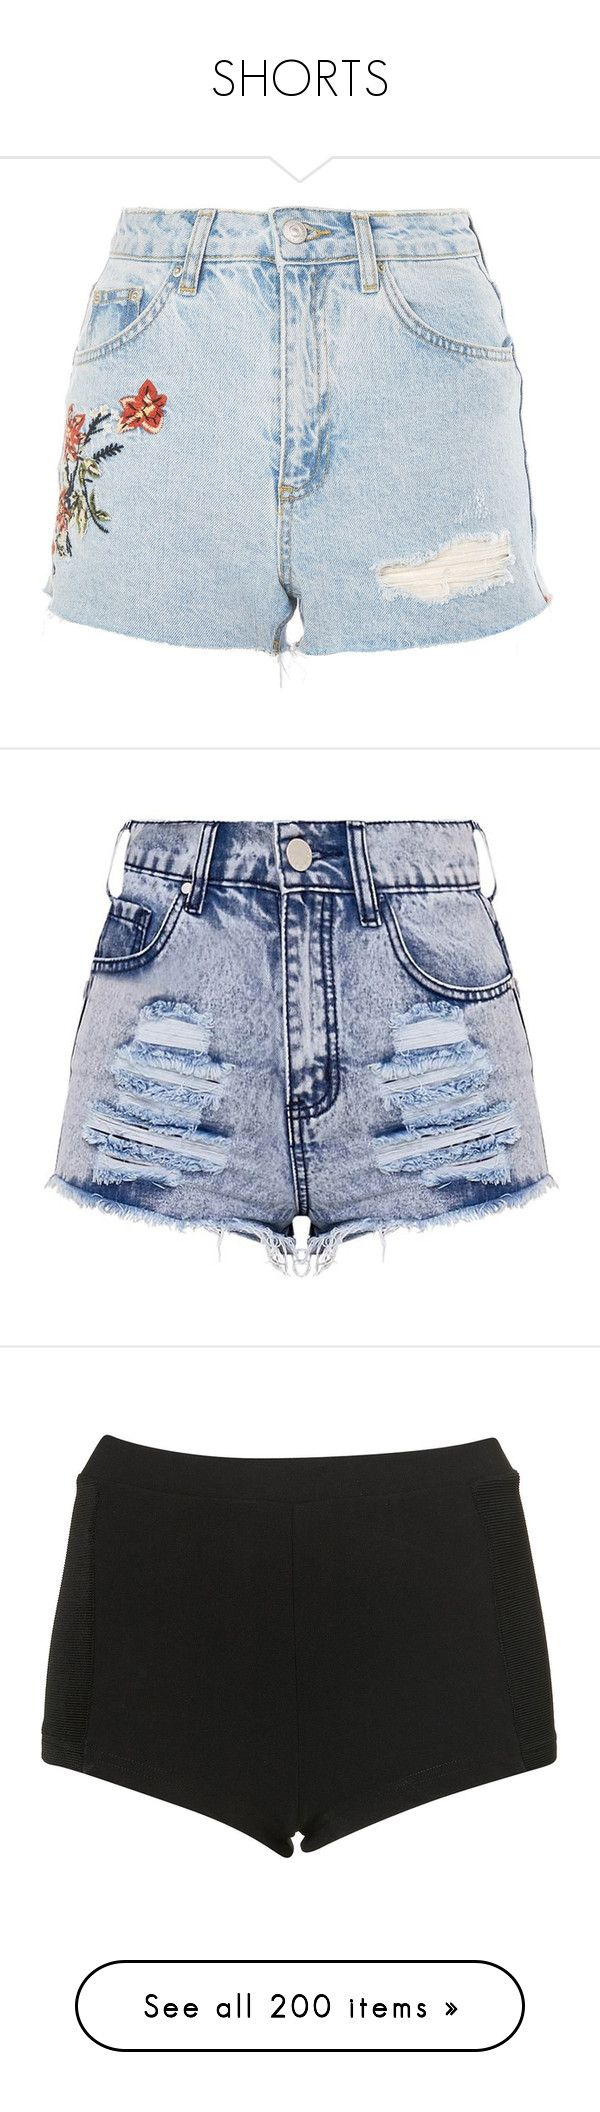 """""""SHORTS"""" by fran-peeters ❤ liked on Polyvore featuring shorts, bottoms, topshop, bleach denim, petite jean shorts, petite denim shorts, denim shorts, petite shorts, bleached denim shorts and short"""